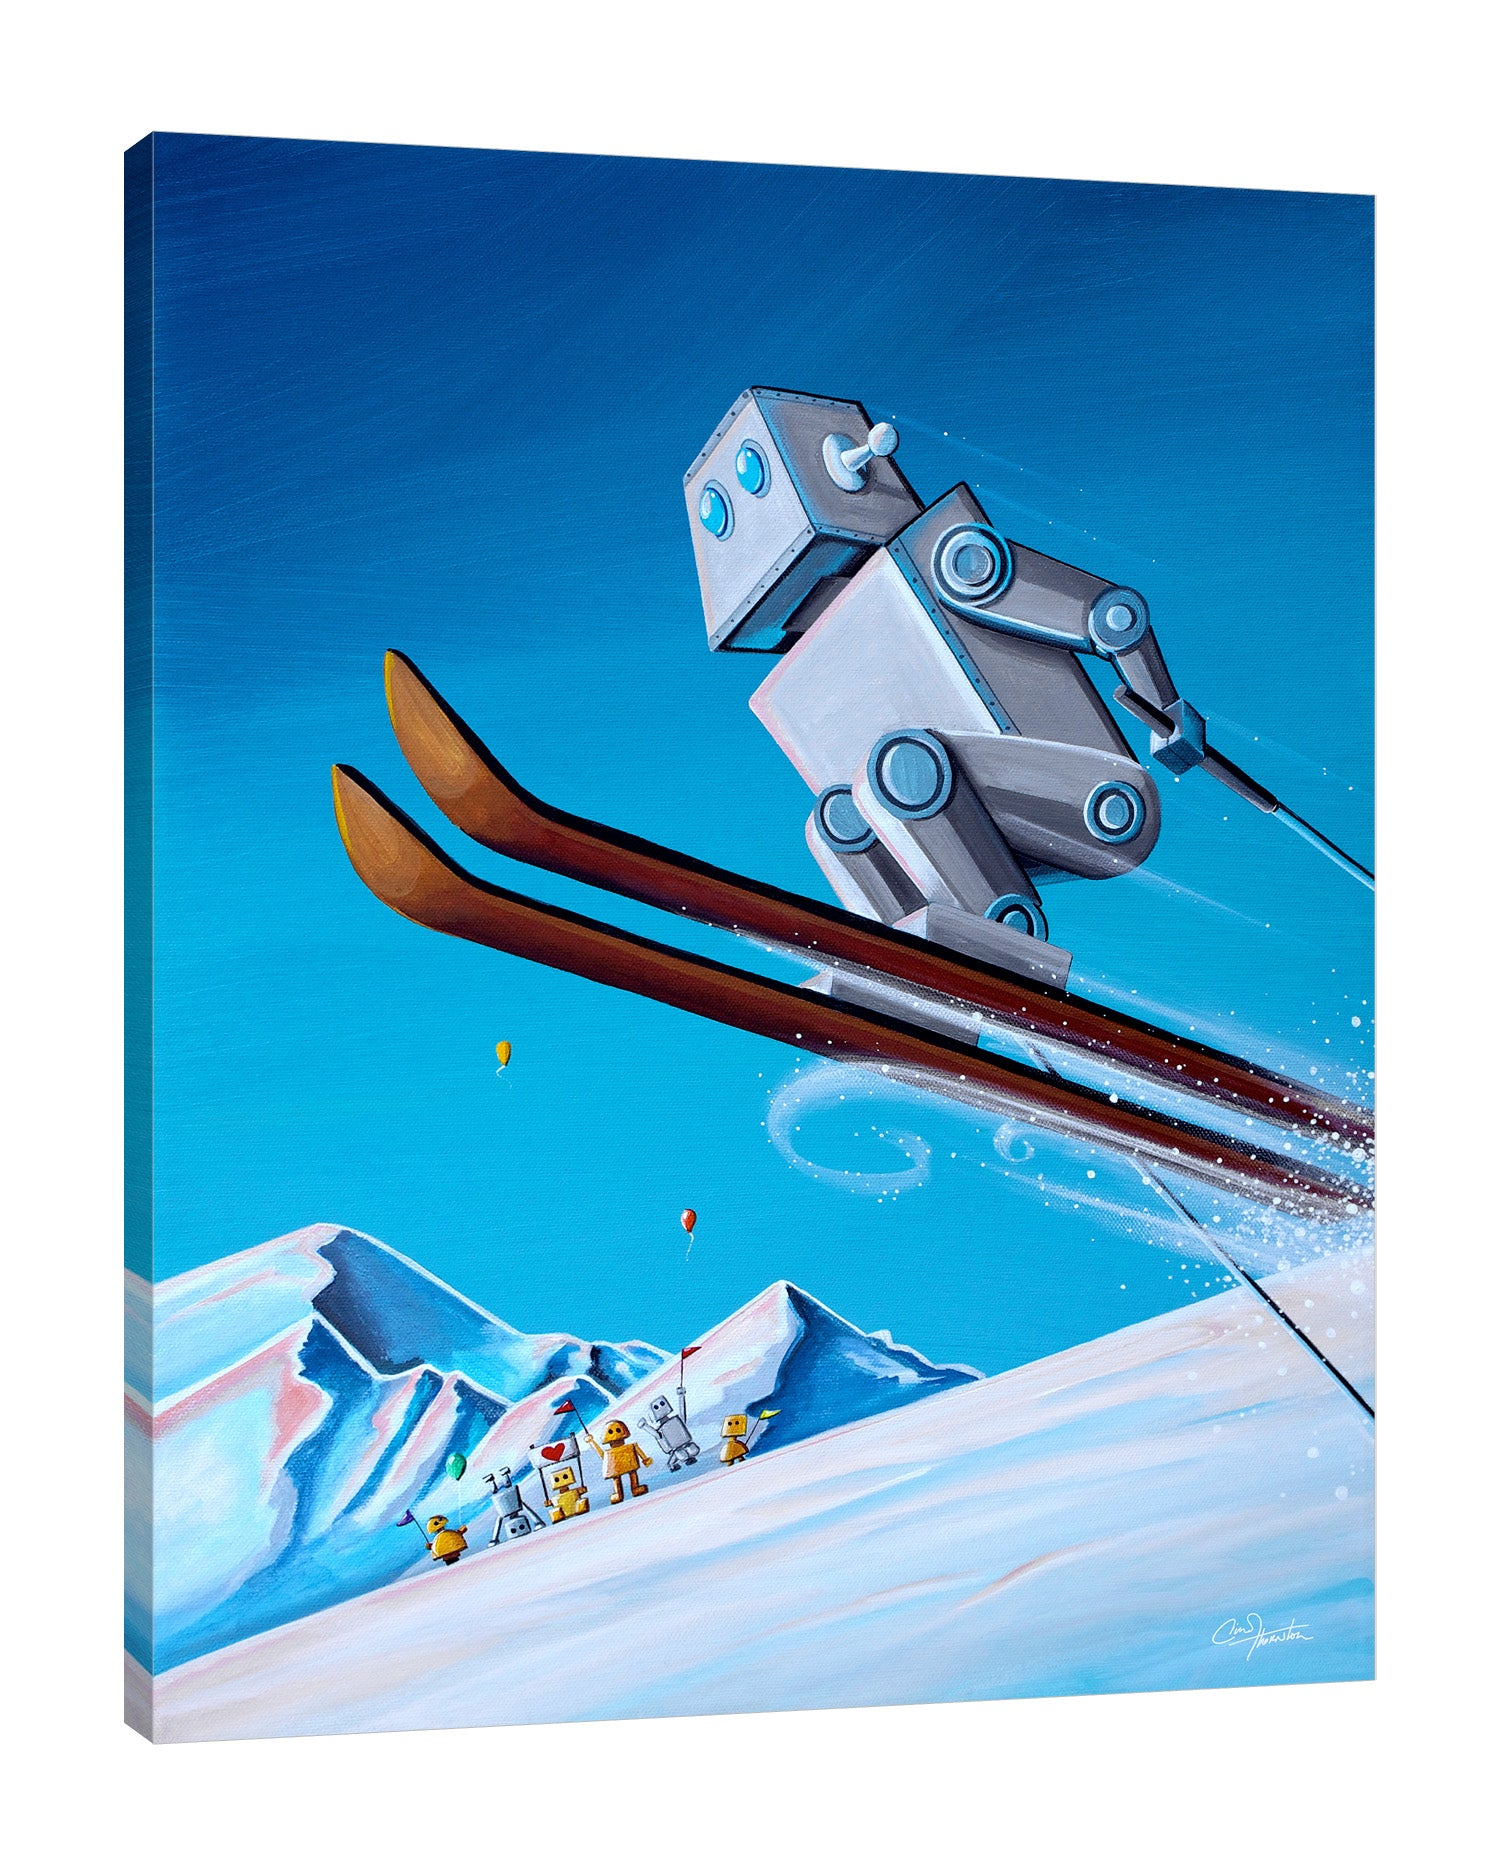 Cindy-Thornton,Modern & Contemporary,Fantasy & Sci-Fi,robot,skiing,snow,mountain,Steel Blue,Teal Blue,Charcoal Gray,Blue,White,Black,Gray